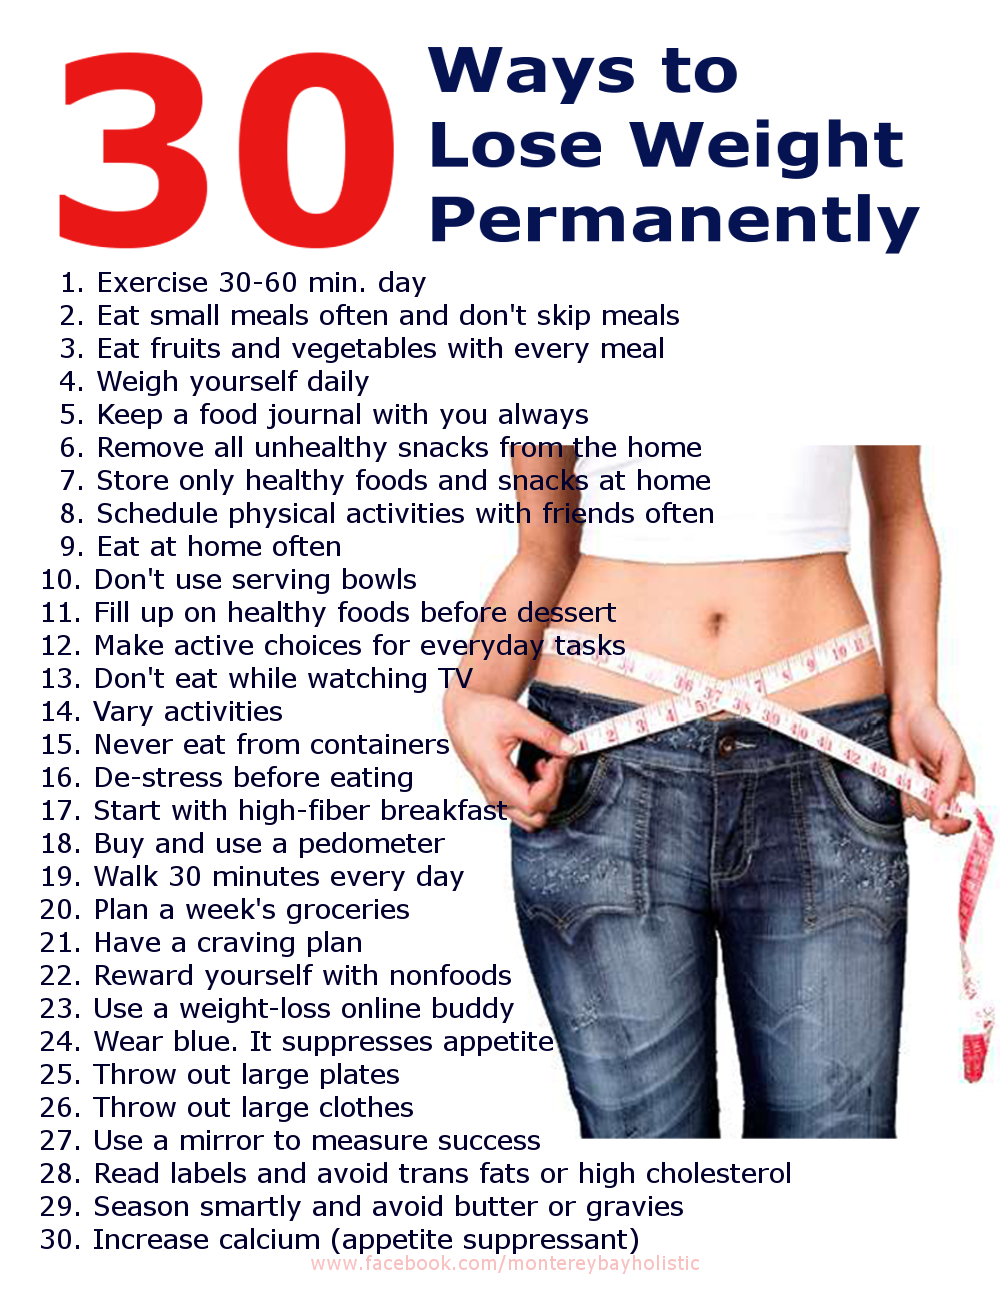 30-ways-lose-weight1.jpg